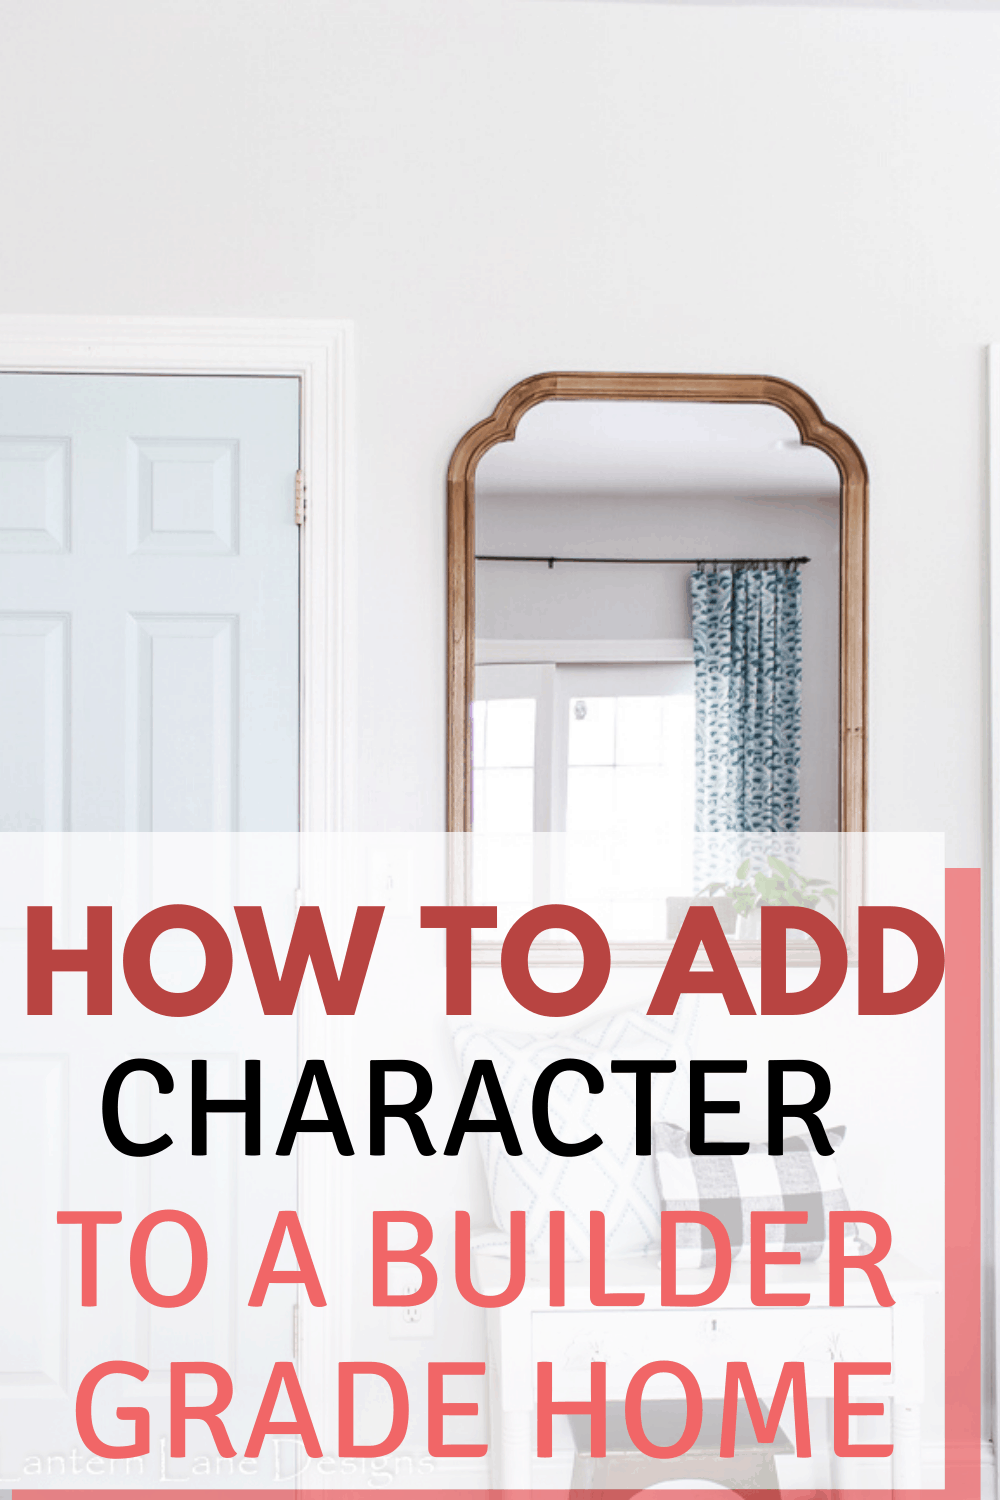 Easy ways to add character to your builder grade home. I listed some easy and affordable ways to add character and interest to your home decor with easy DIY projects. #decoratingideas #homedecor #diy